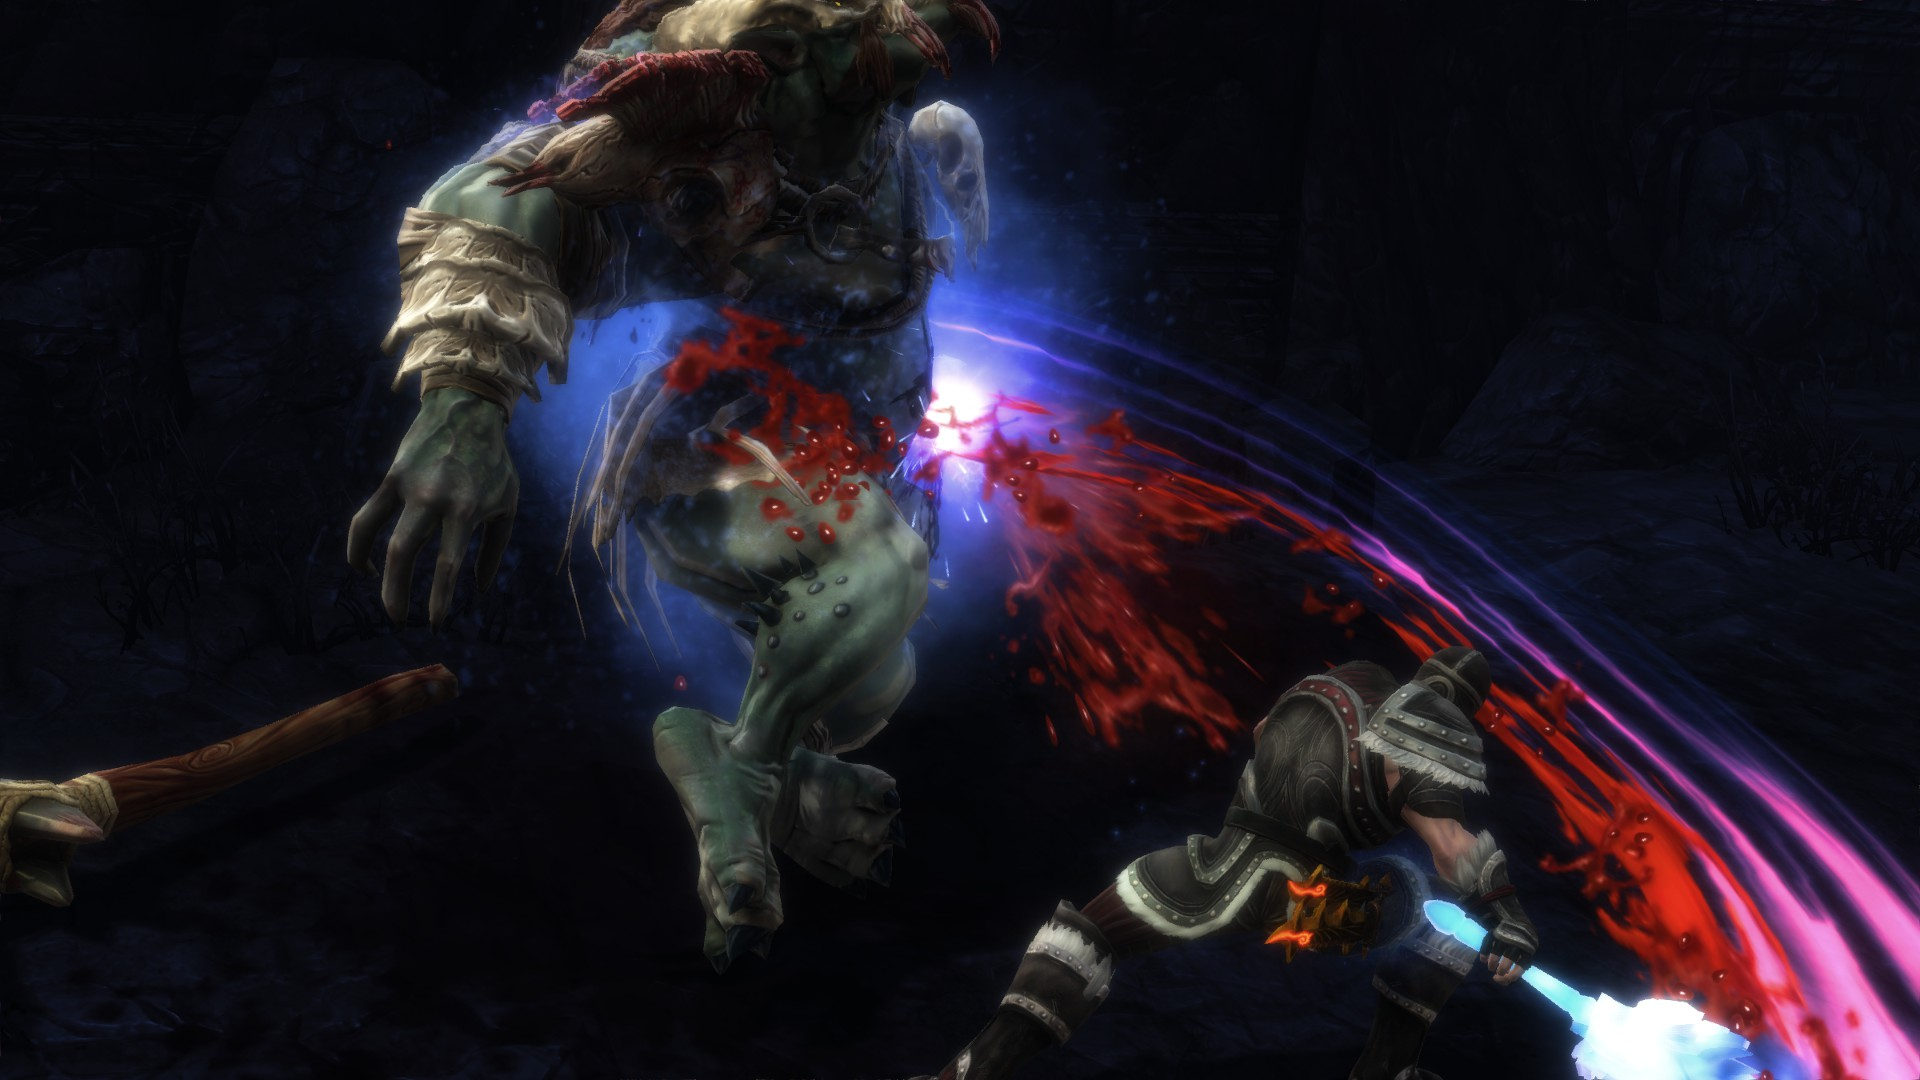 Kingdoms of Amalur: Re-reckoning review – Kill, collect, craft, repeat